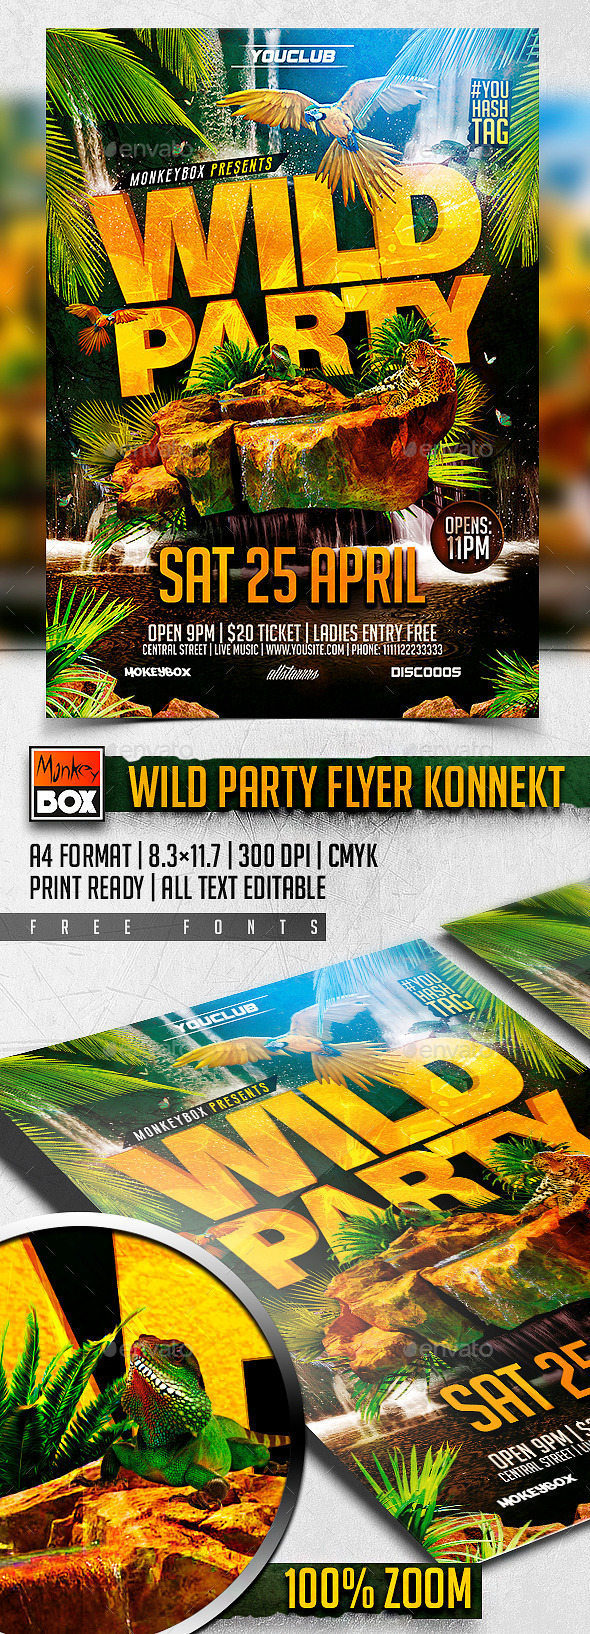 GraphicRiver Wild Party Flyer Konnekt 11170779